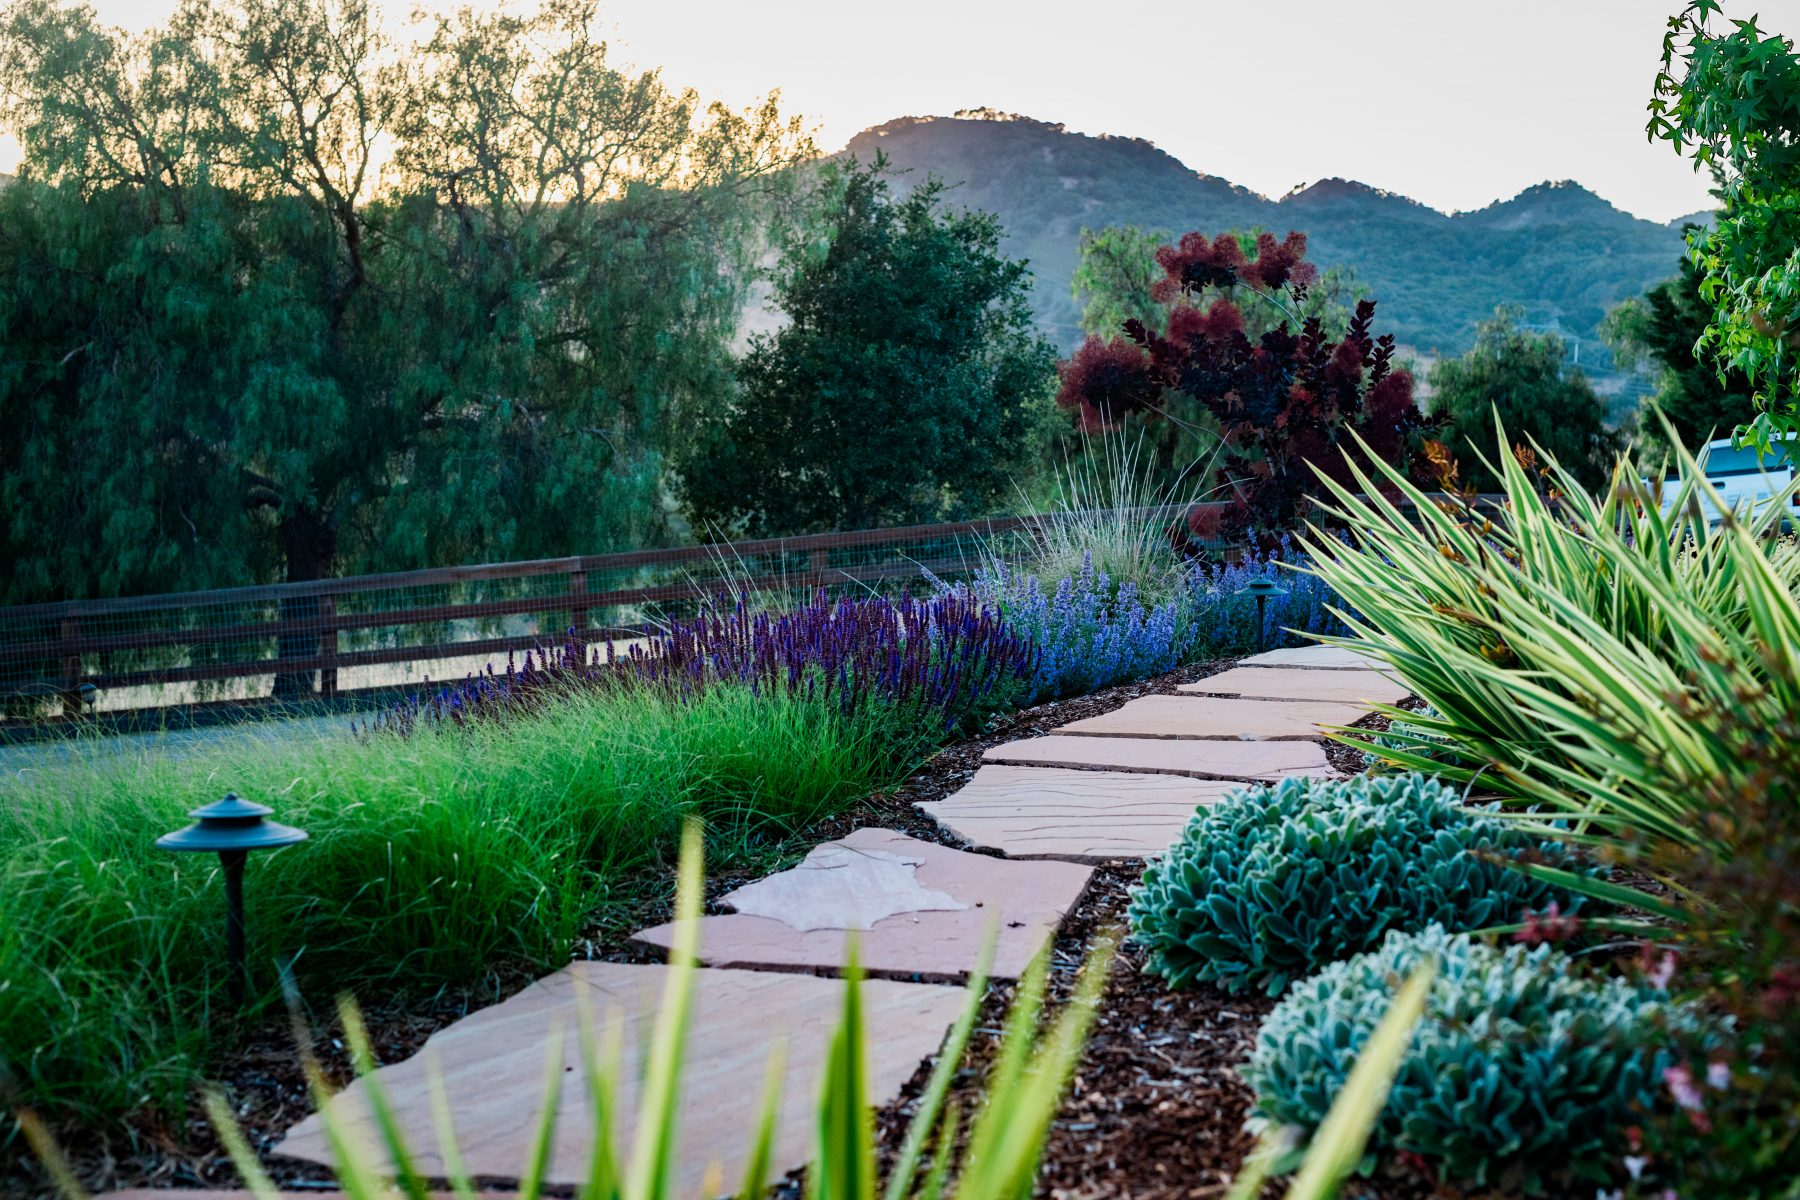 Ordinaire ... Tranquil Park Like Garden. We Included A Variety Of Colorful  Drought Tolerant Plants That Help Accent The House And Provide A  Comfortable Setting For ...